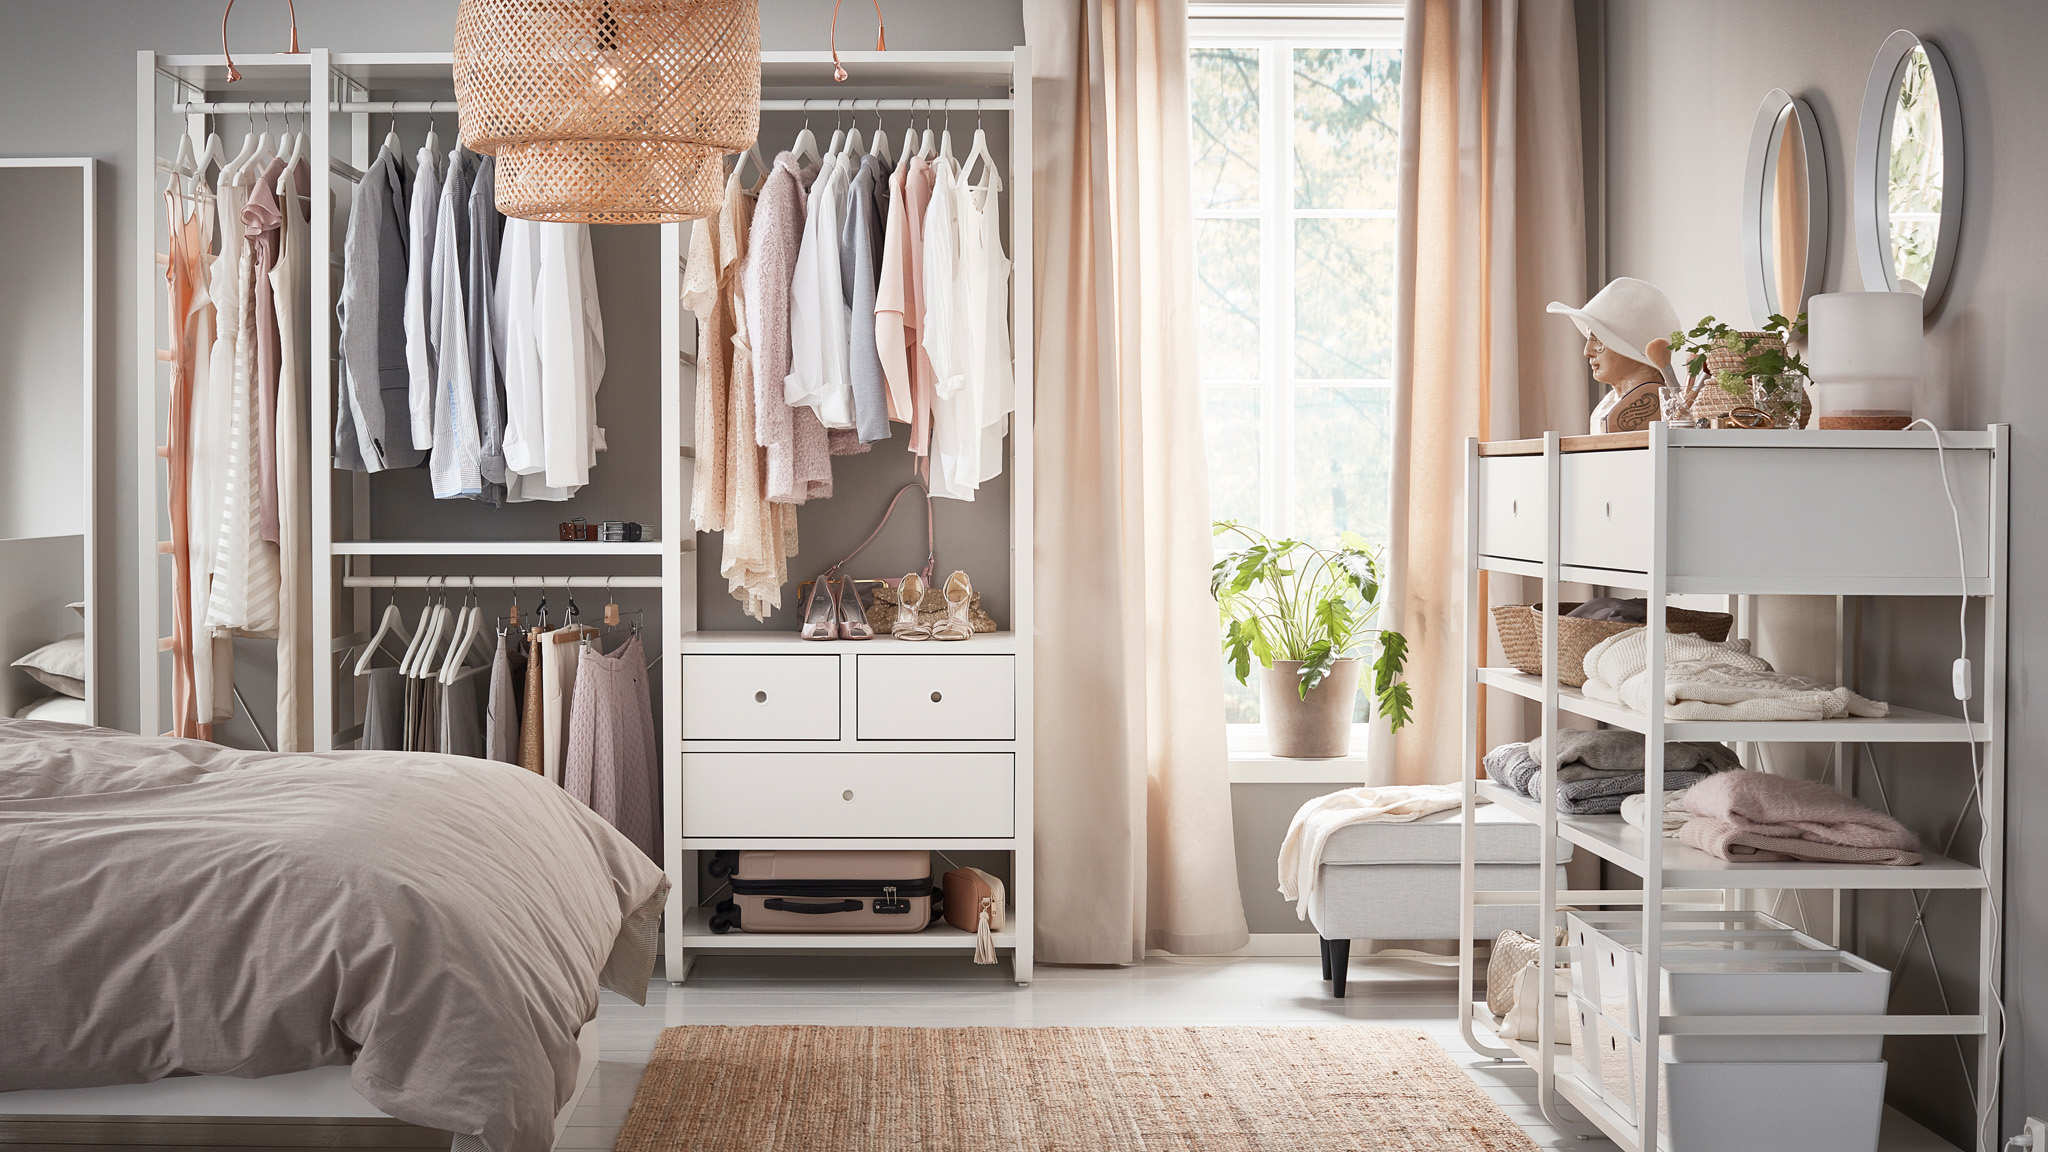 19 Dressing Room Ideas To Create Your Dream Dressing Room Design Real Homes